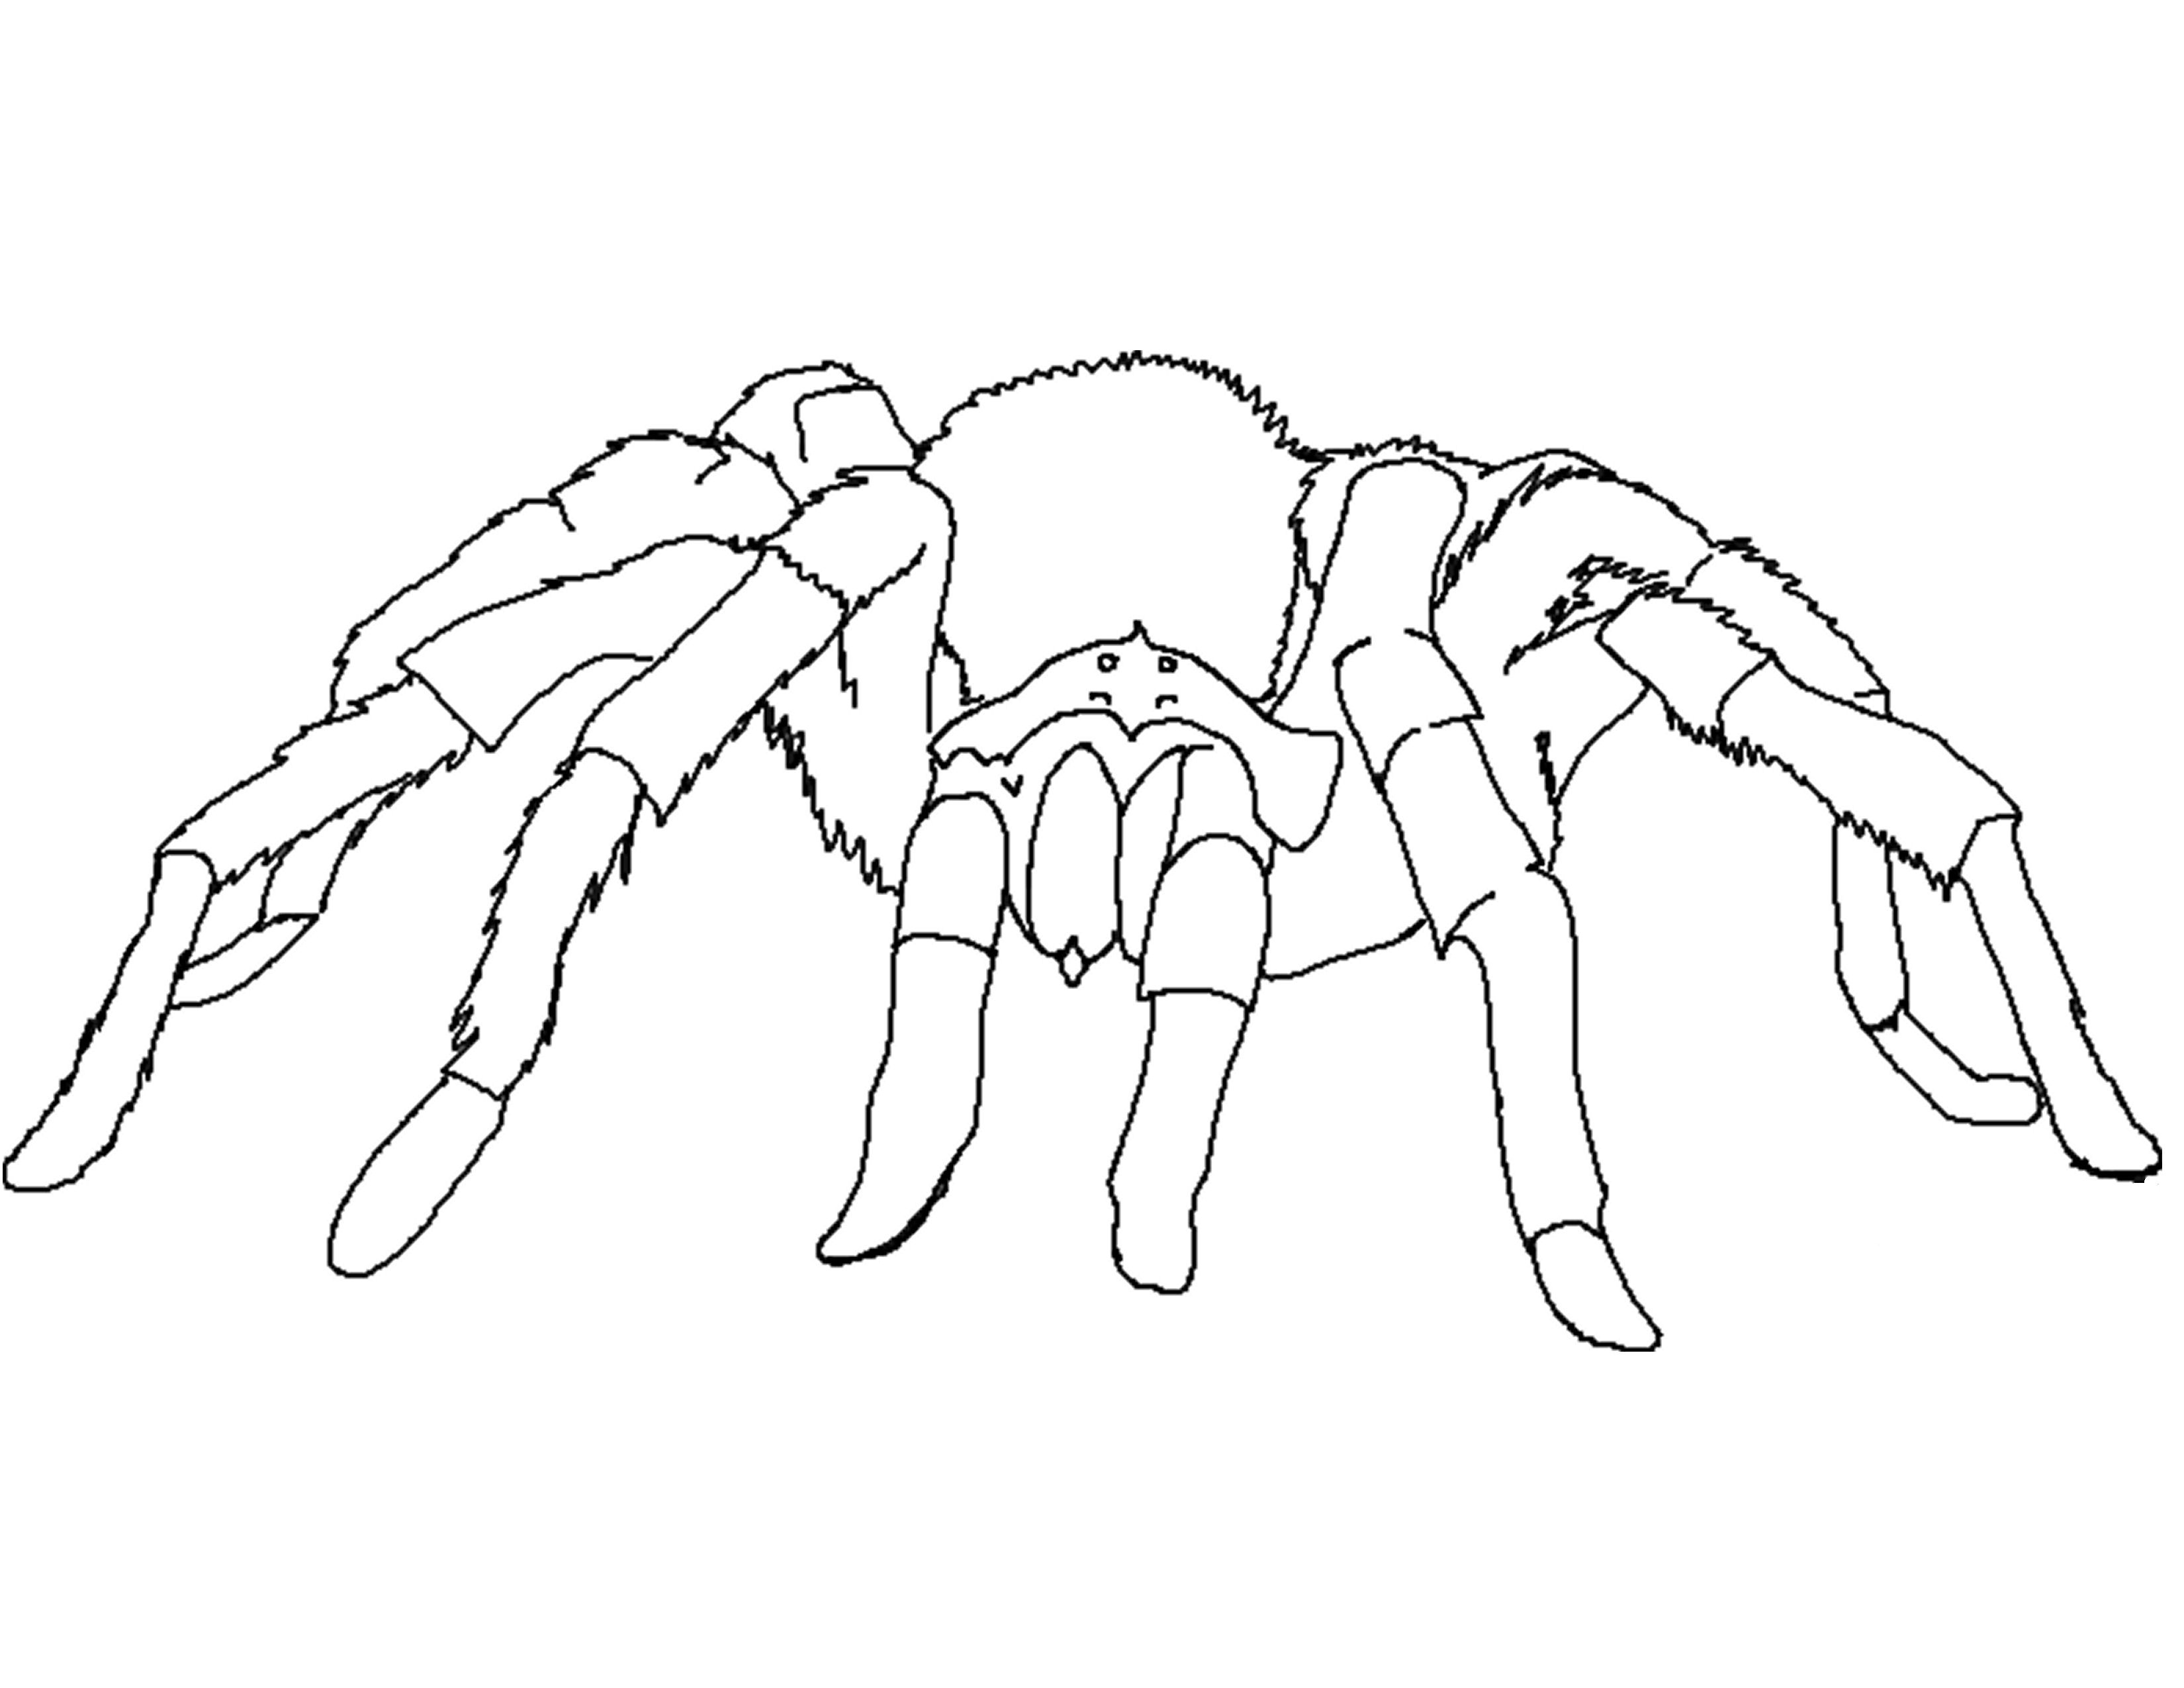 spider coloring book spider coloring pages kidsuki book coloring spider